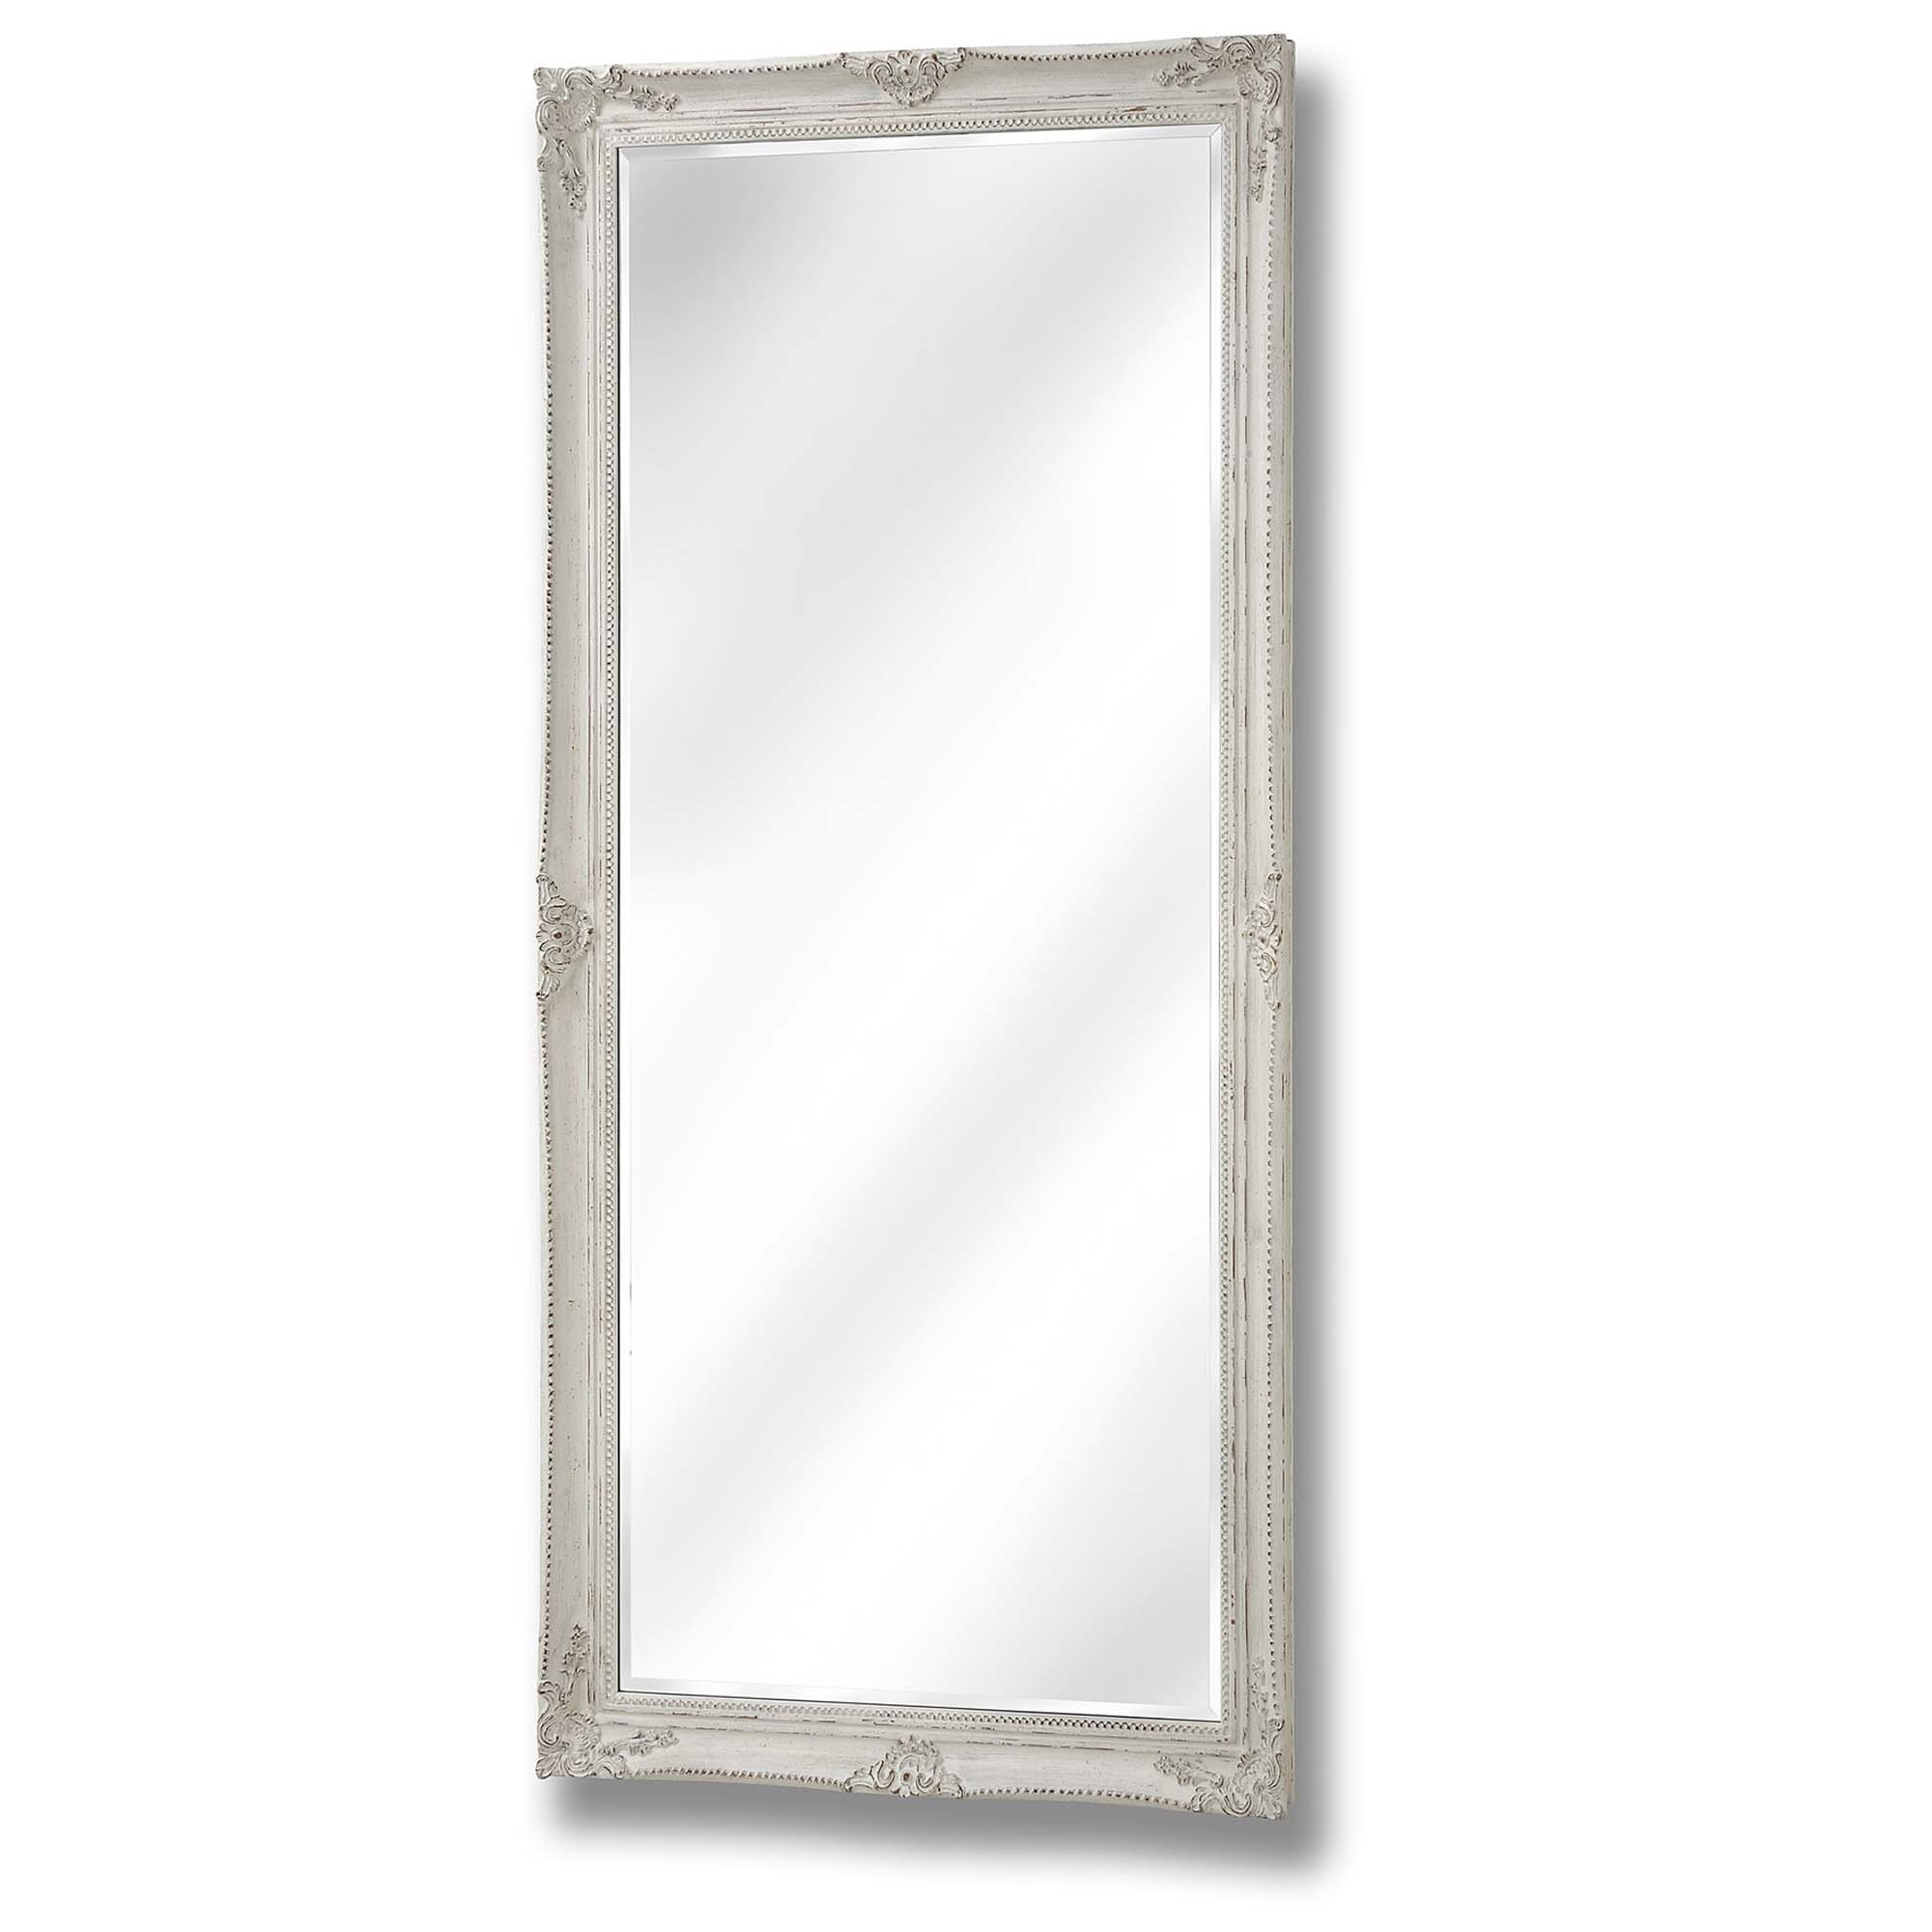 large antique french style white wall mirror homesdirect365. Black Bedroom Furniture Sets. Home Design Ideas